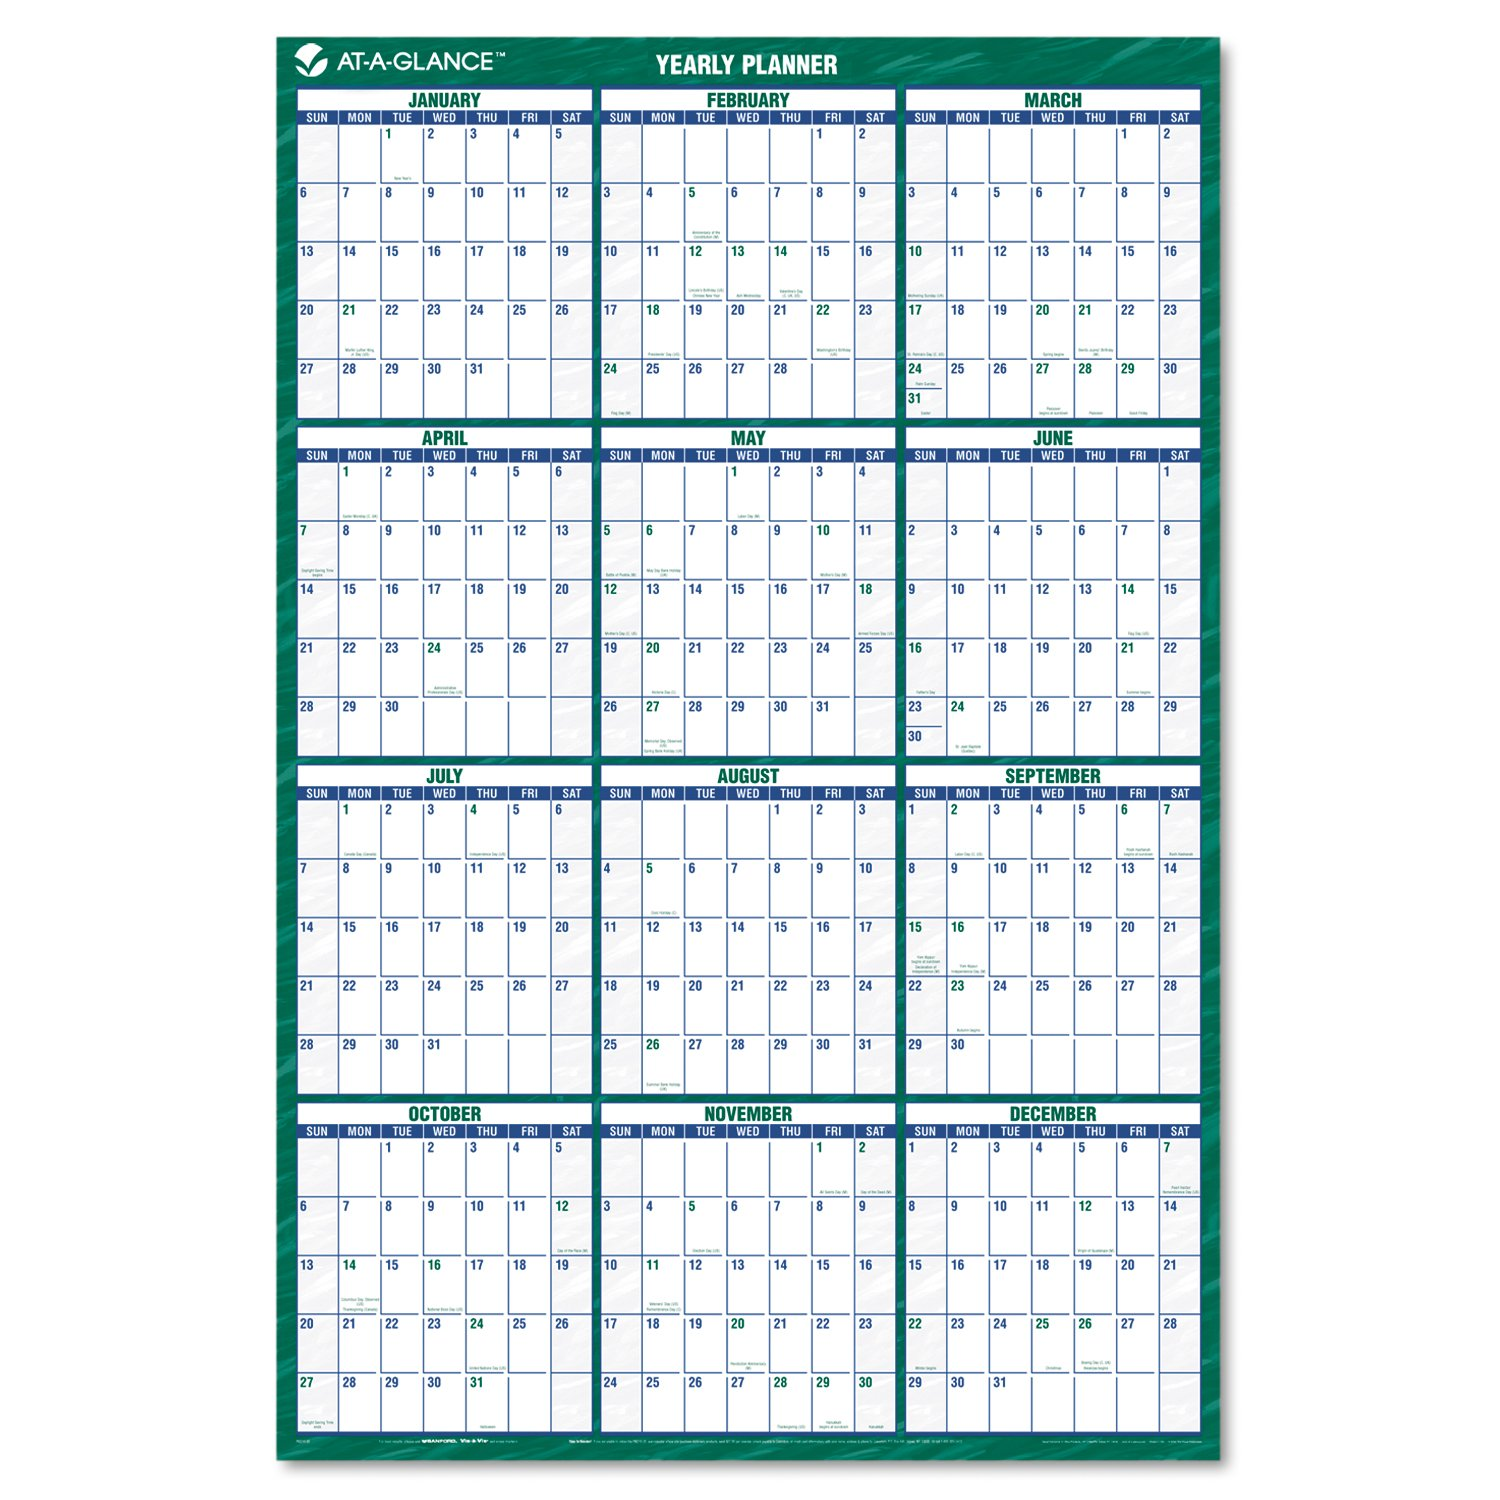 AAGPM21028 - At-a-Glance Recycled Vertical Erasable Wall Planner by AT-A-GLANCE